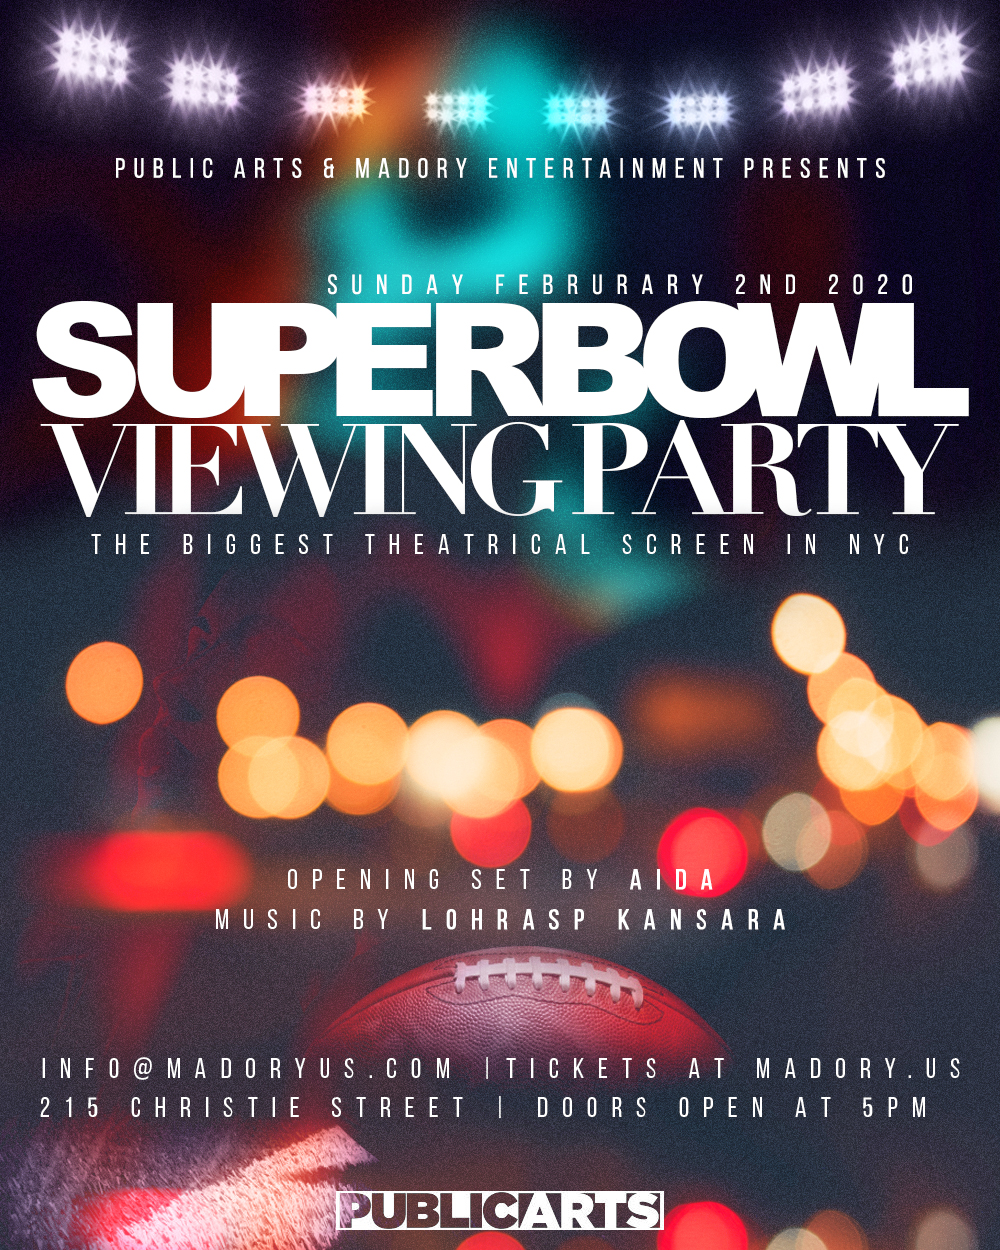 Superbowl Viewing party!